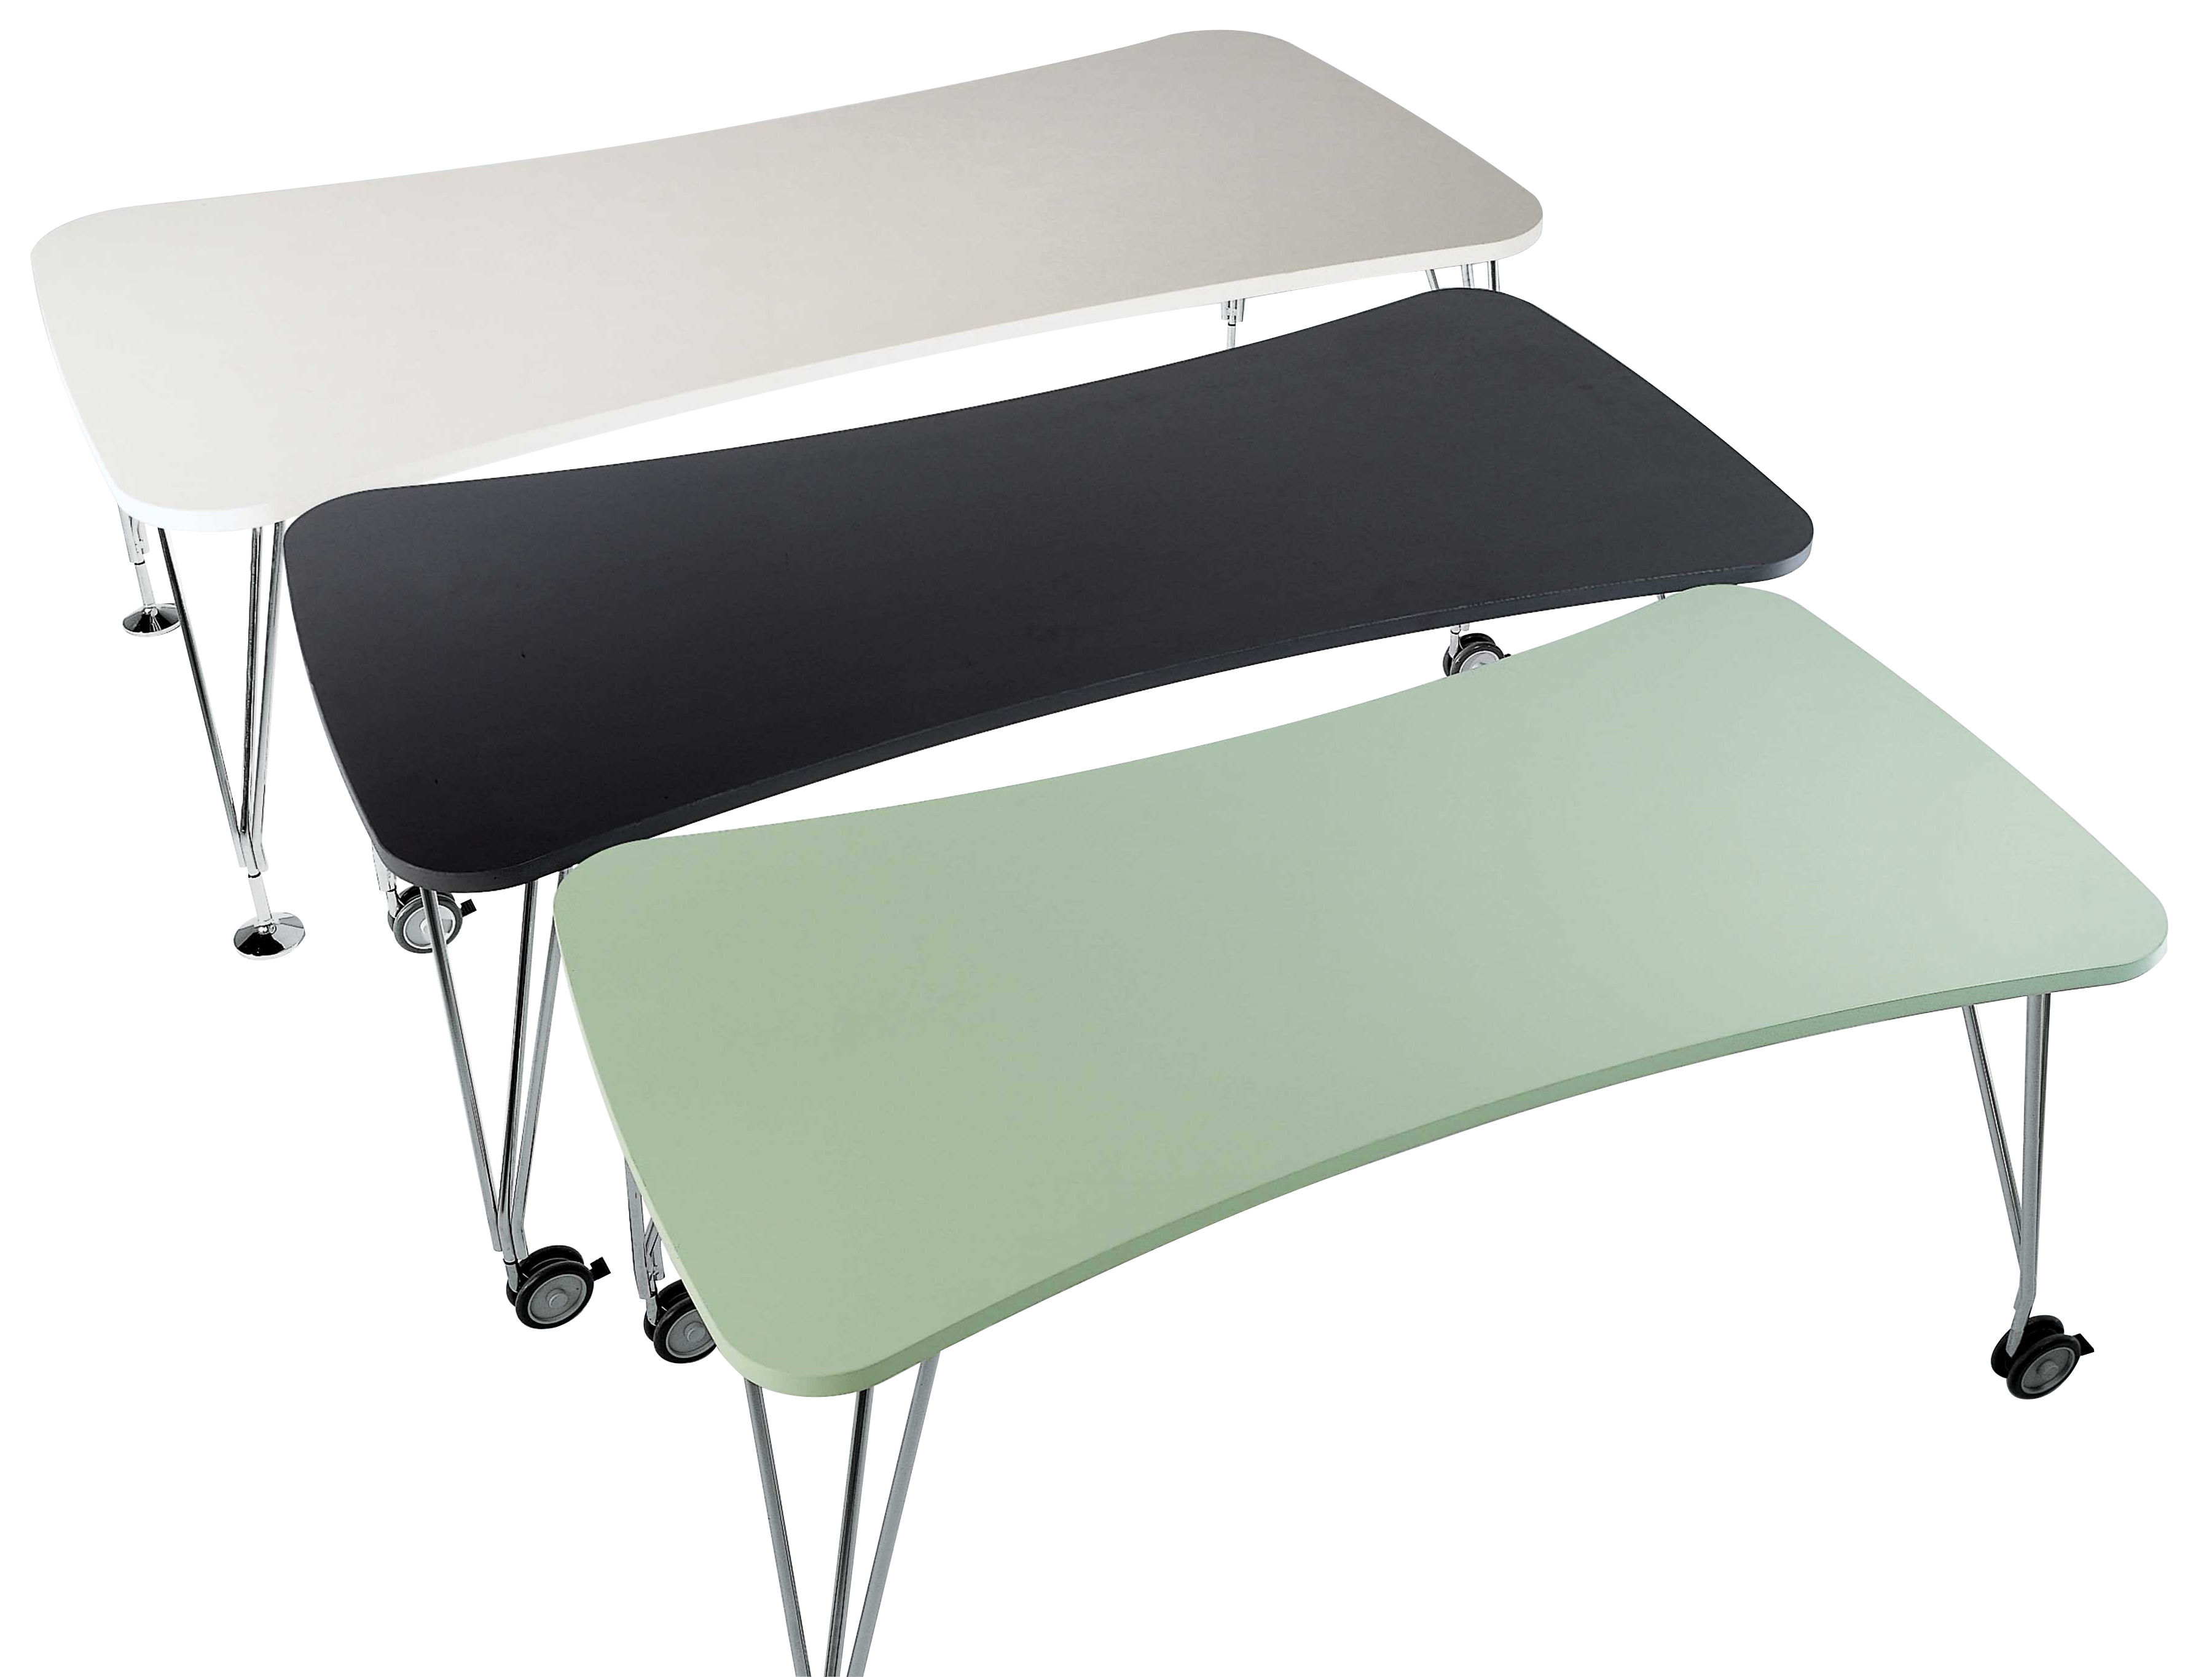 Furniture - Teen furniture - Max Table - Casters - 190 cm by Kartell - white 190 cm - Chromed steel, Laminate